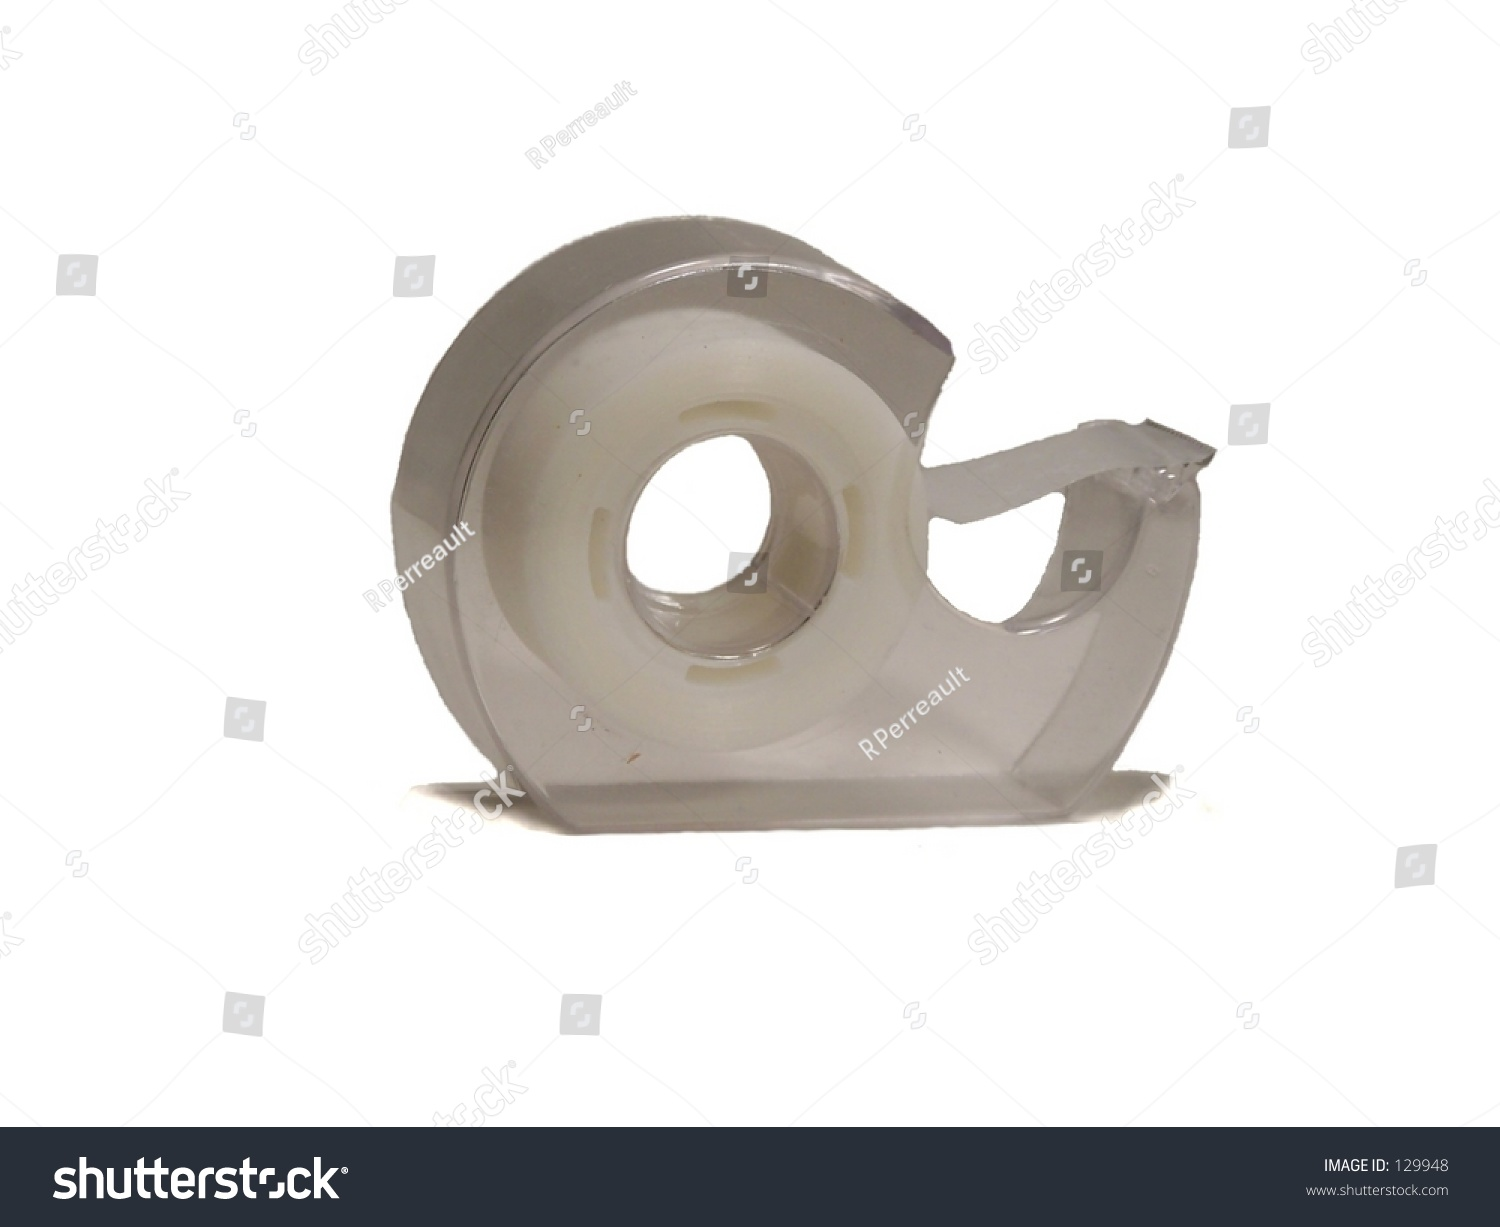 plastic scotch tape dispenser